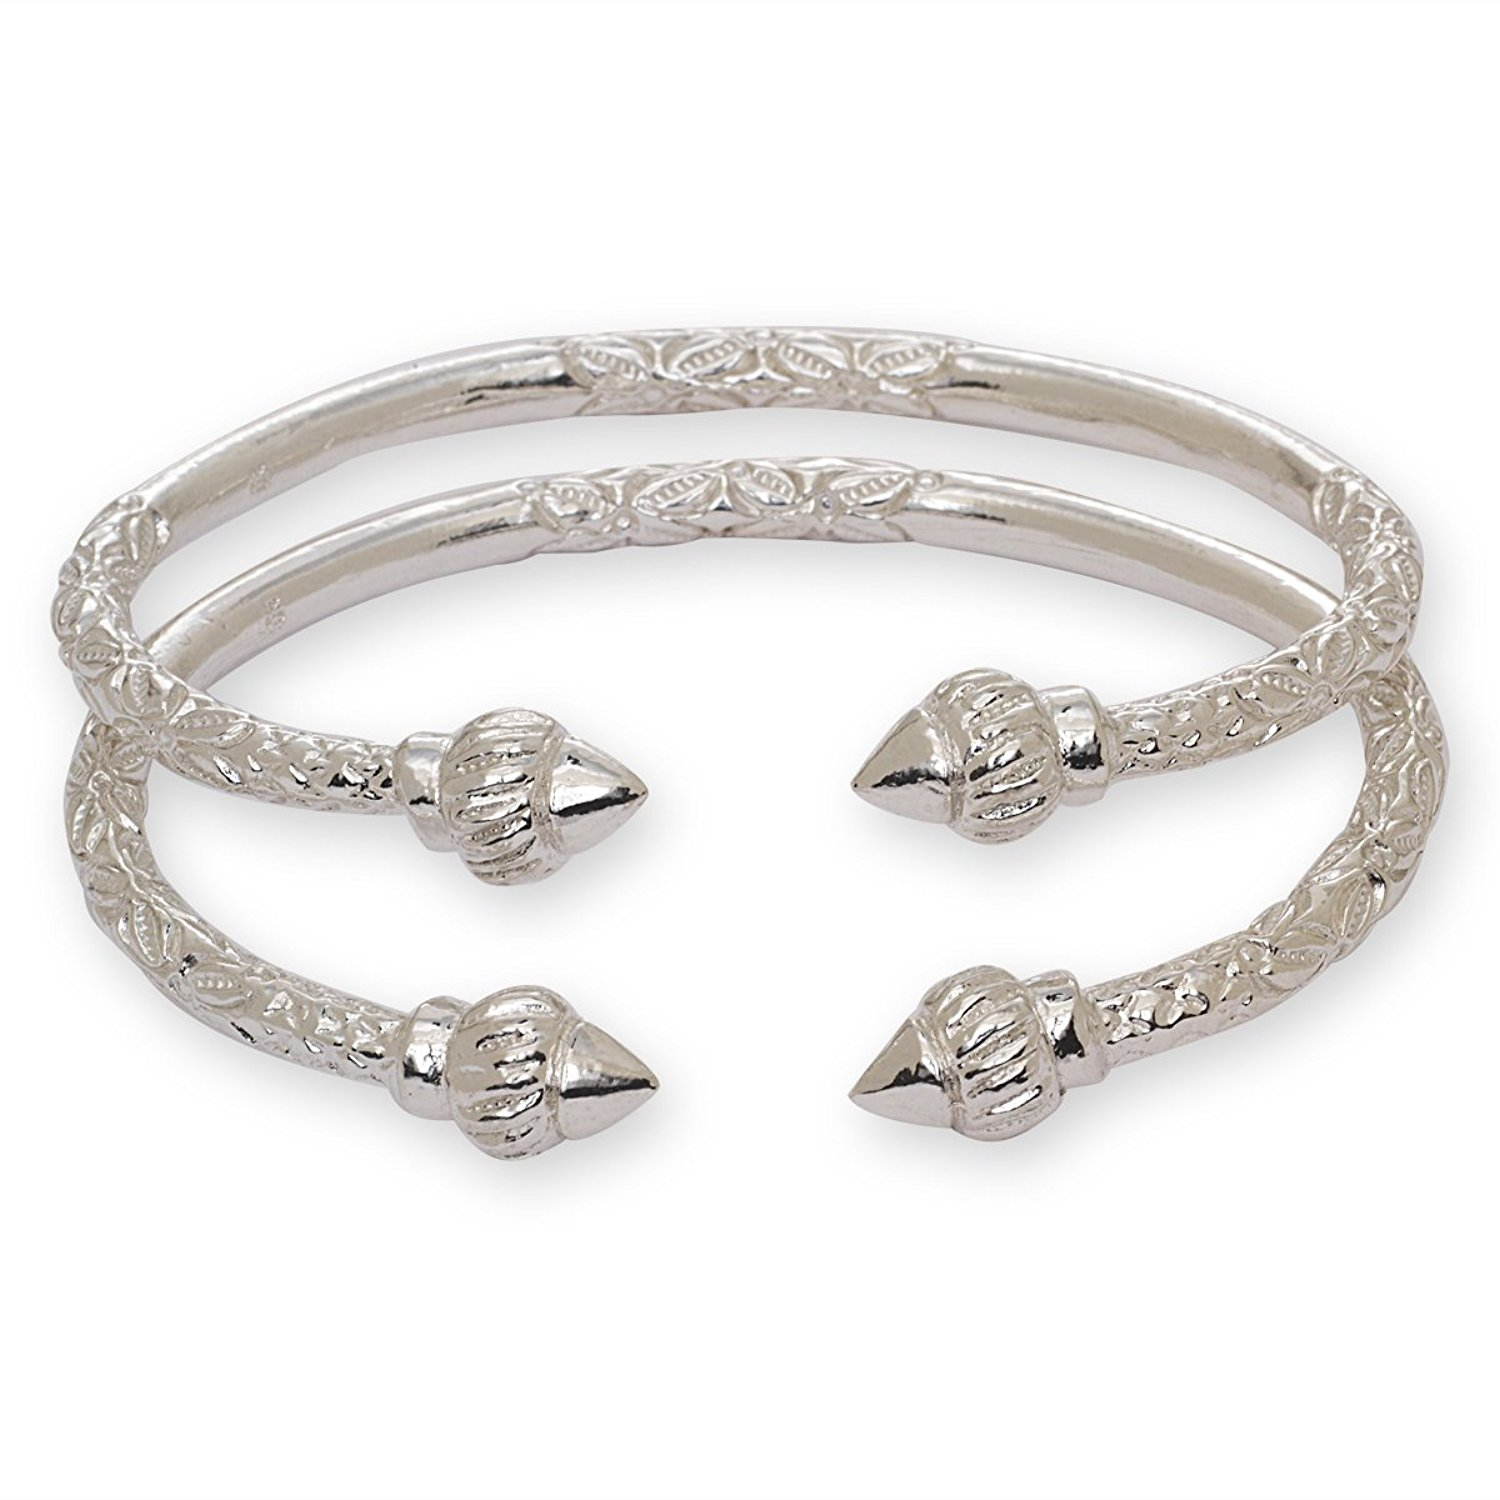 Silver bangles to complement your Style